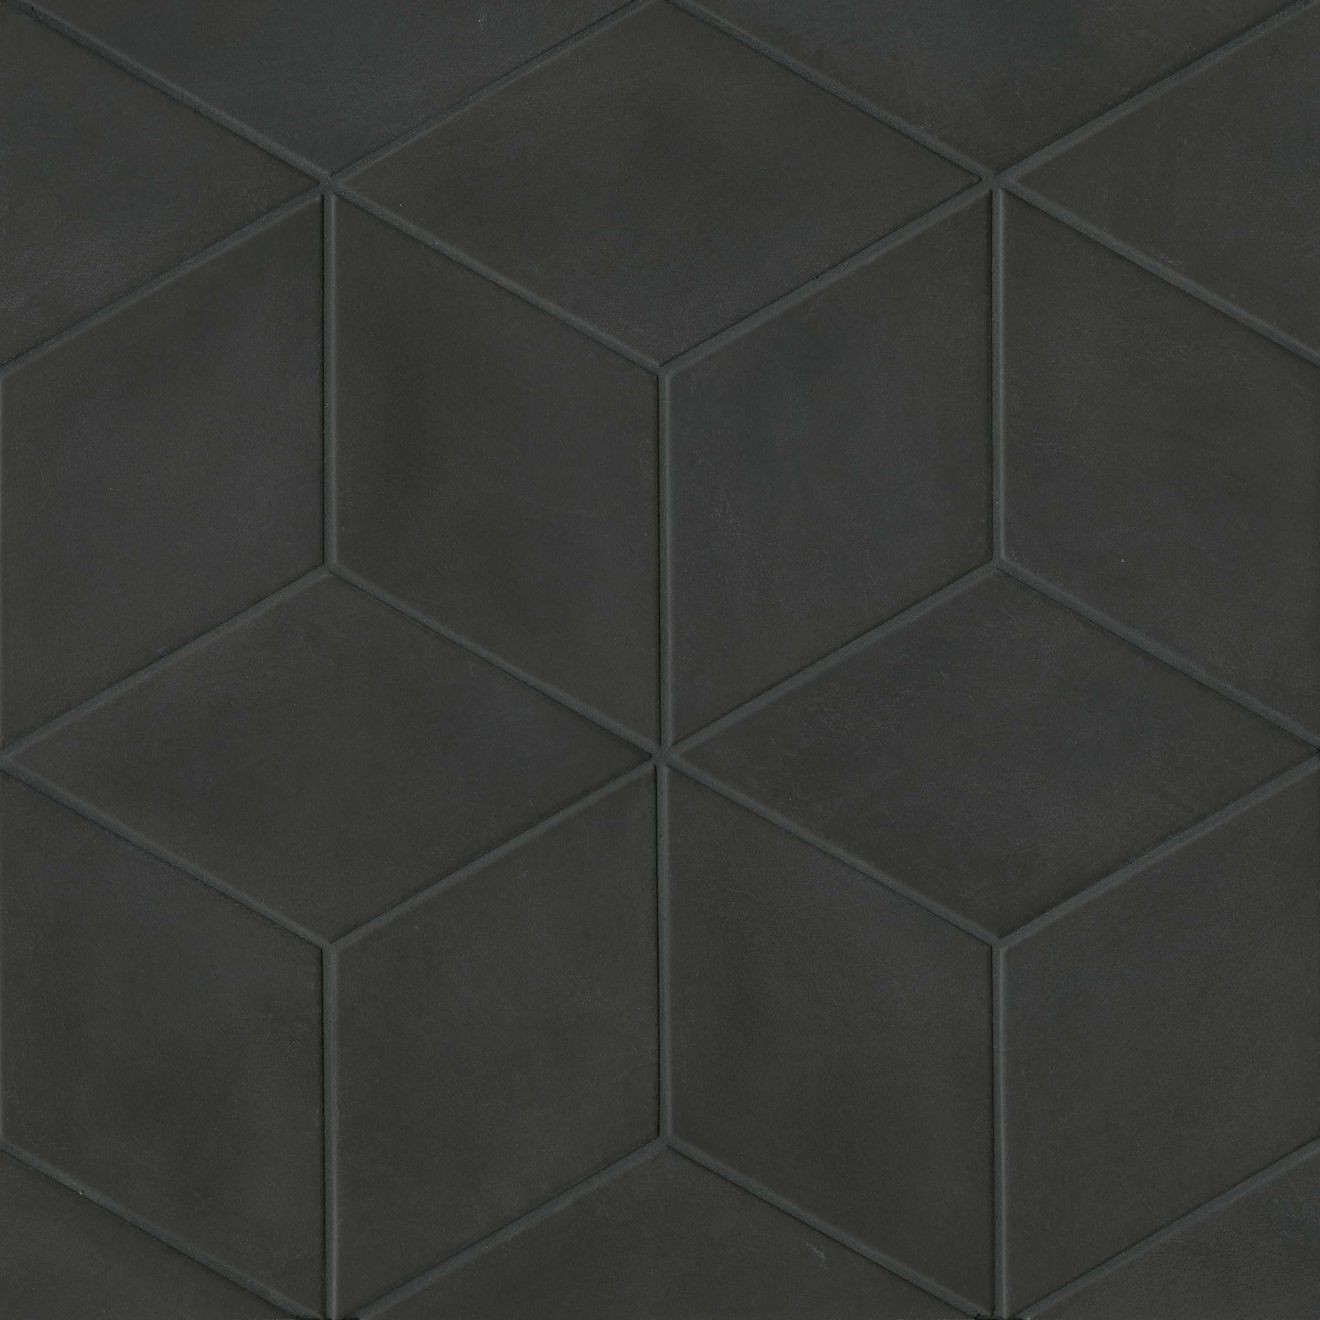 "Allora 7.5"" x 12.75"" Floor & Wall Tile in Solid Black"